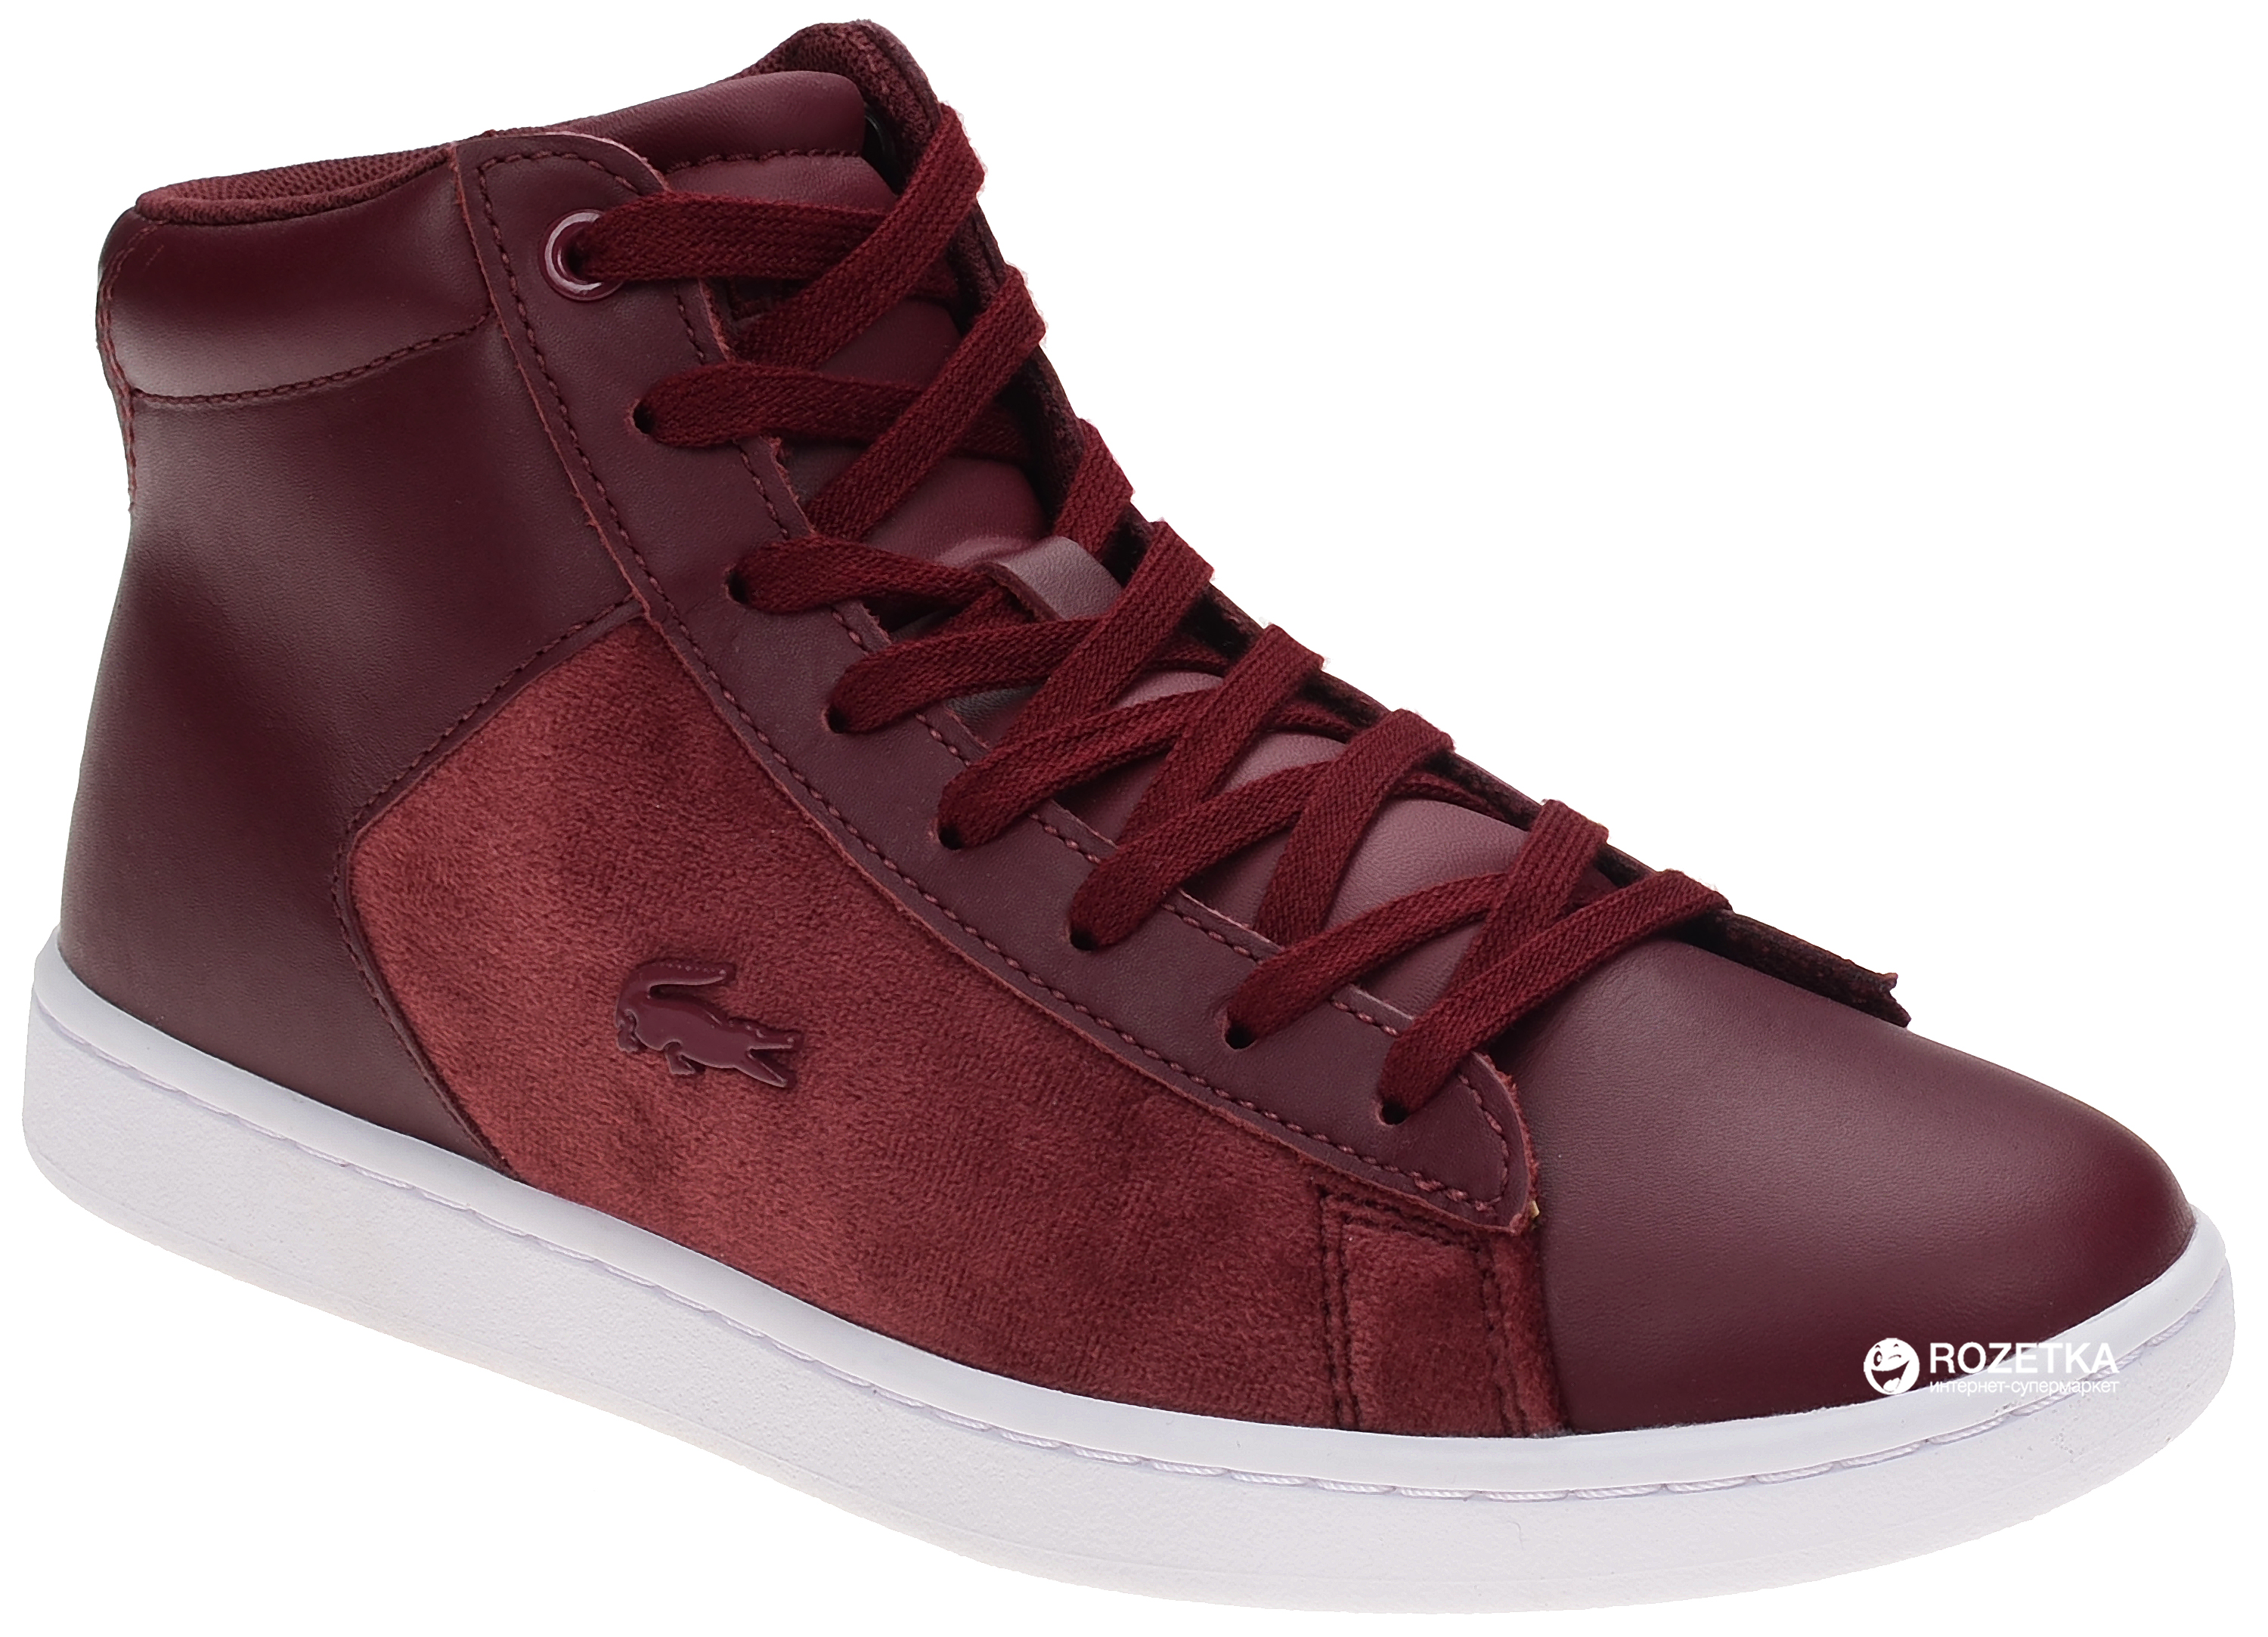 f4c6d2874ad1 Кеды Lacoste Carnaby Evo Mid 318 1 Spw 736SPW00172H2 38.5 (5.5) 25 см (